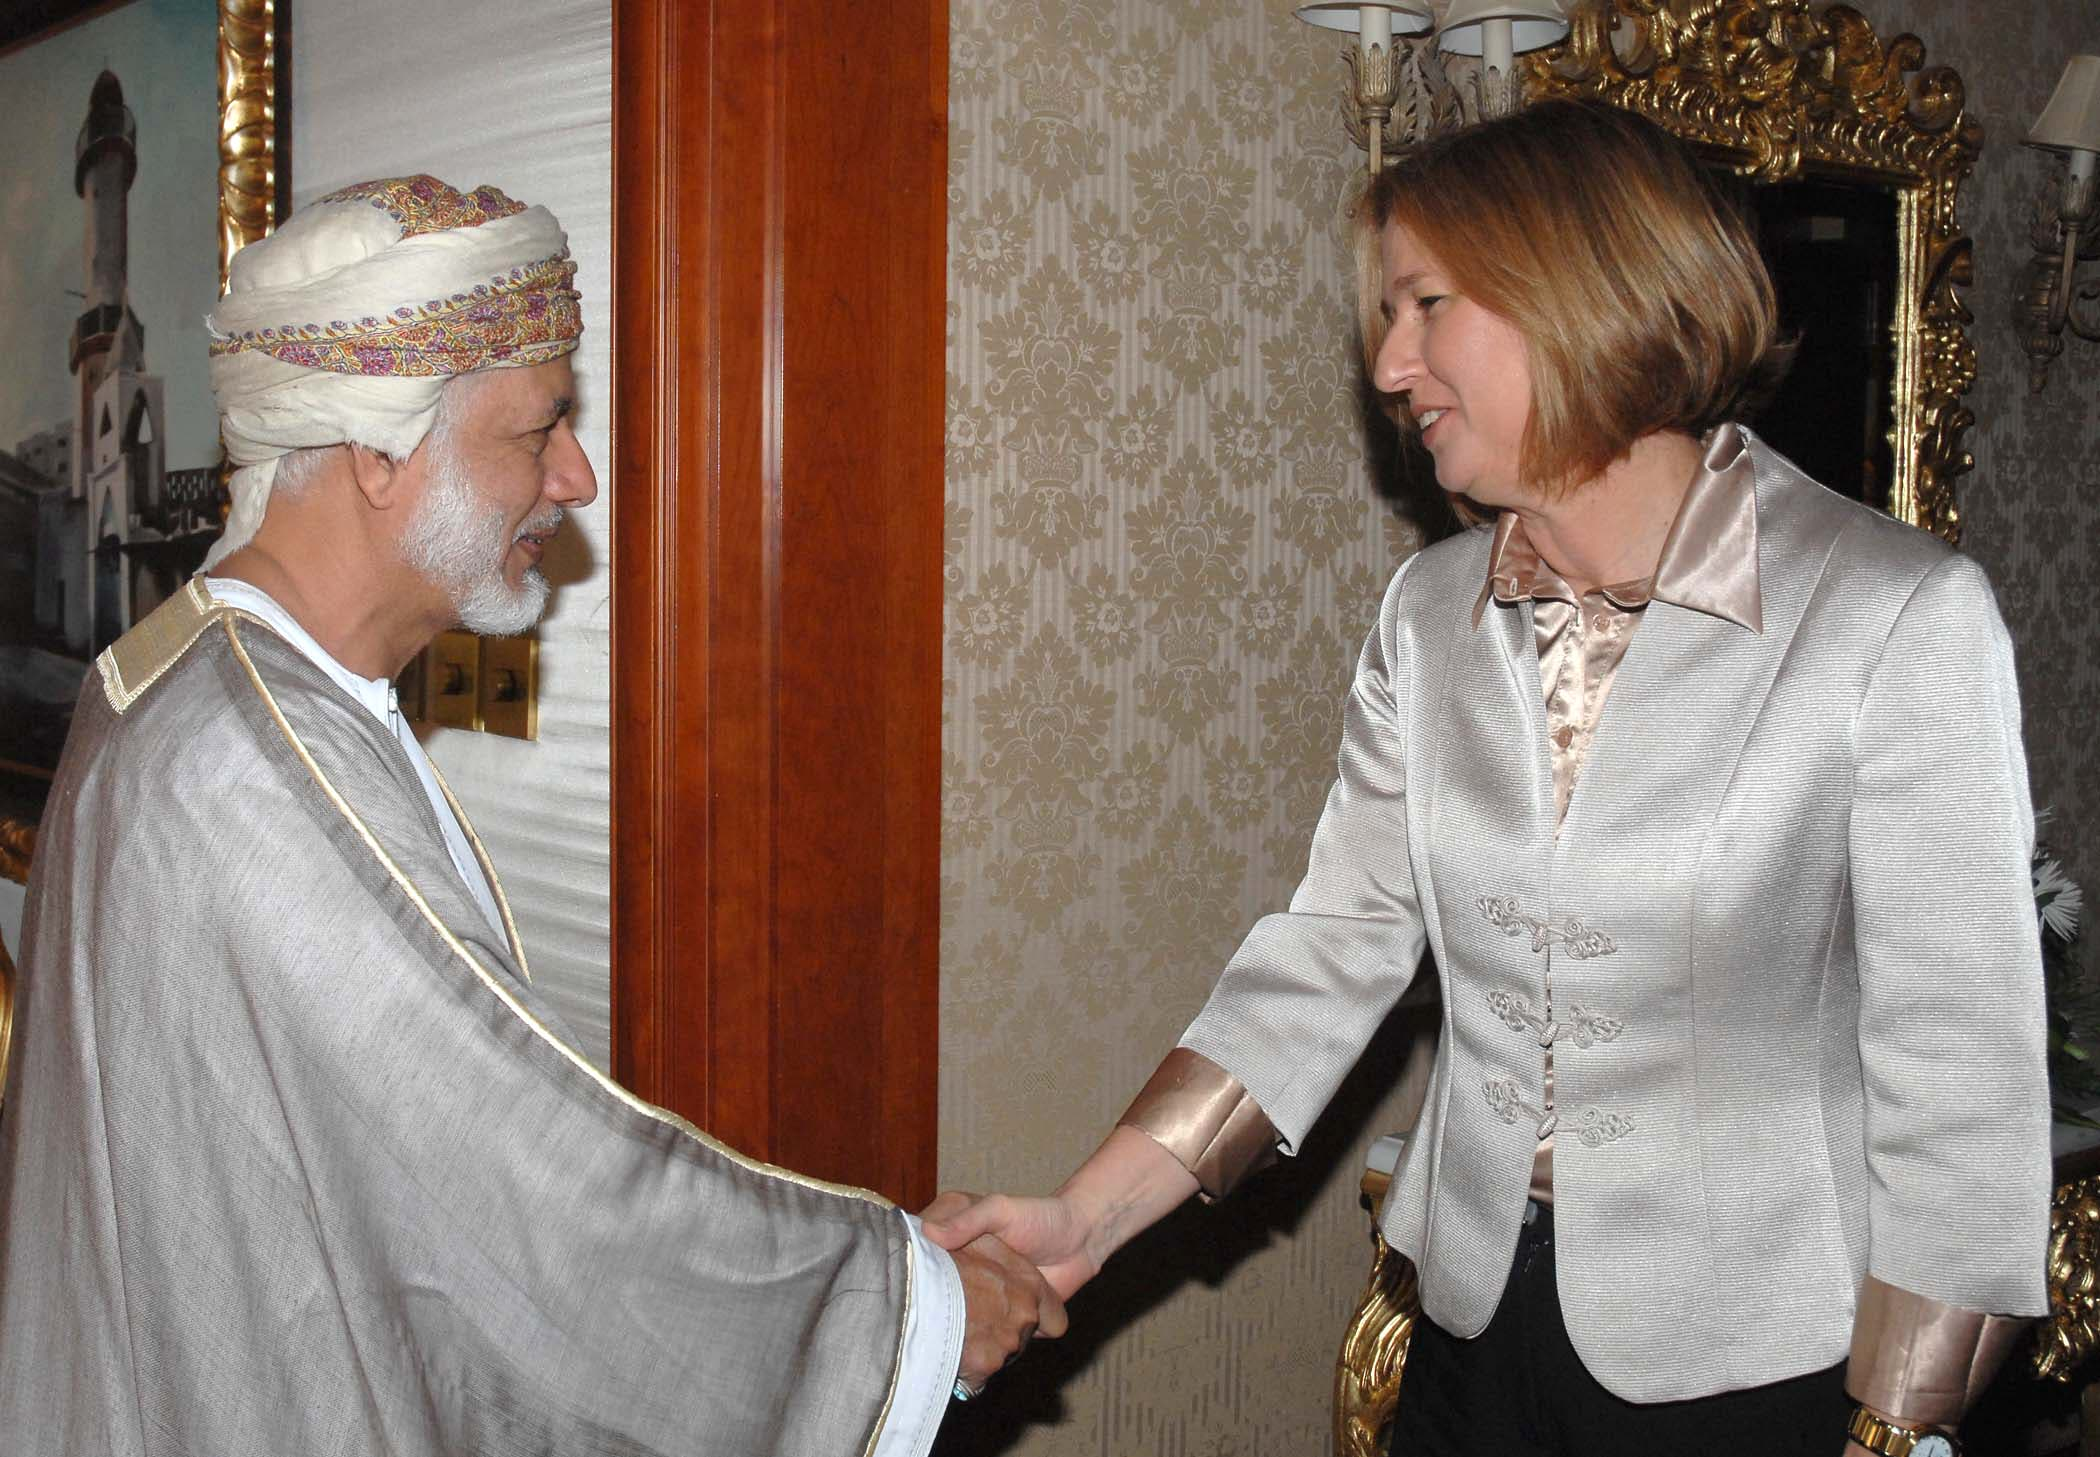 Israeli Foreign Minister Tzipi Livni shaking hands with her Omani counterpart Yusef bin Alawi bin Abdullah on April 14, 2008 in Doha, Qatar. (AFP)